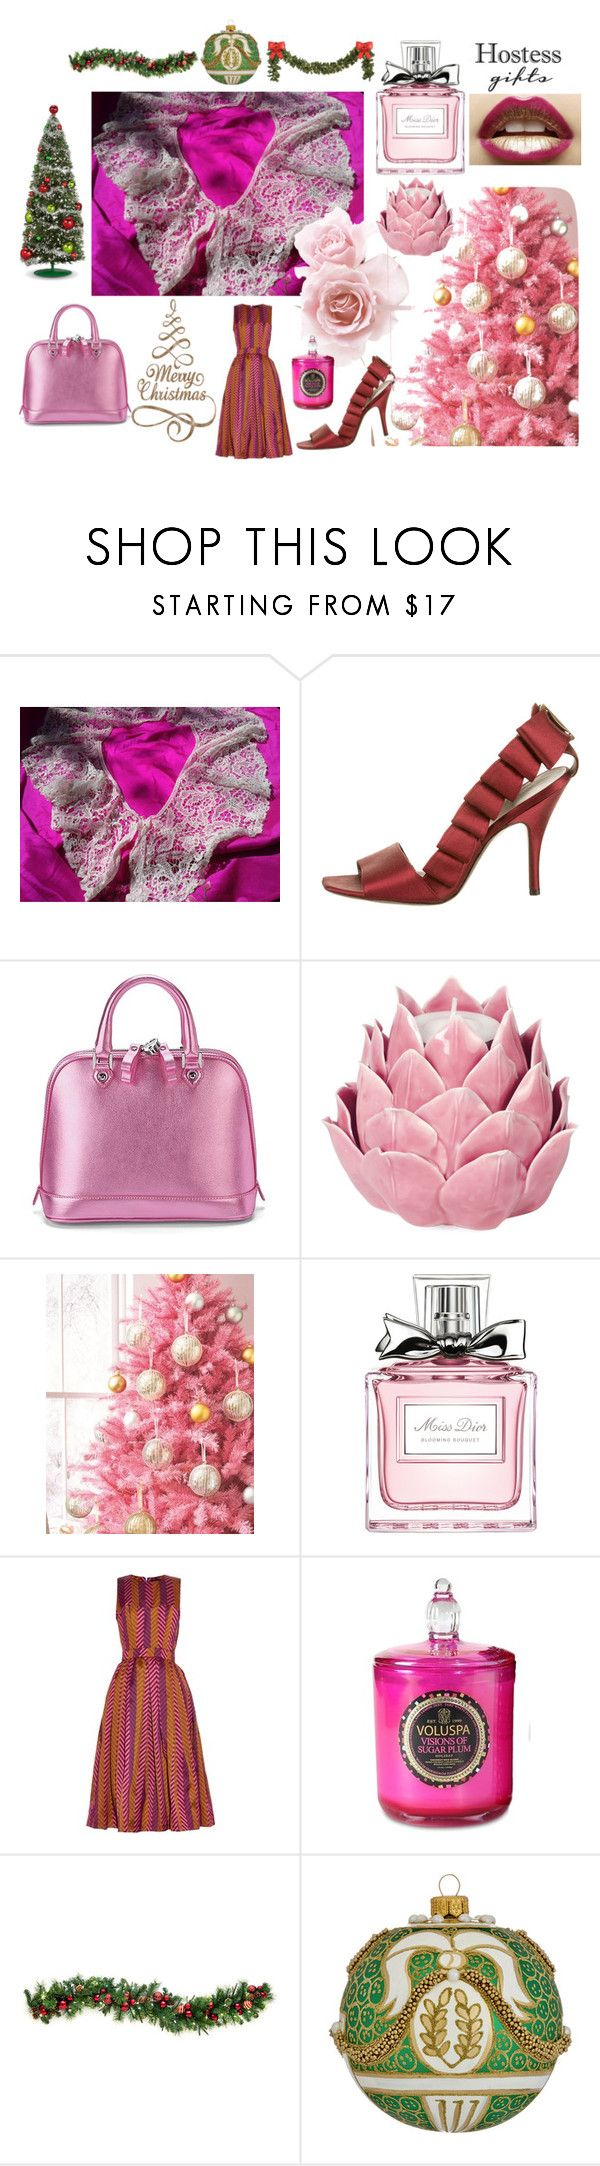 """Pink Christmas Hostess Gifts"" by sophieladydeparis on Polyvore featuring mode, Salvatore Ferragamo, Aspinal of London, Zara Home, Christian Dior, House of Holland, Hostess, Voluspa, Ball et holidays"